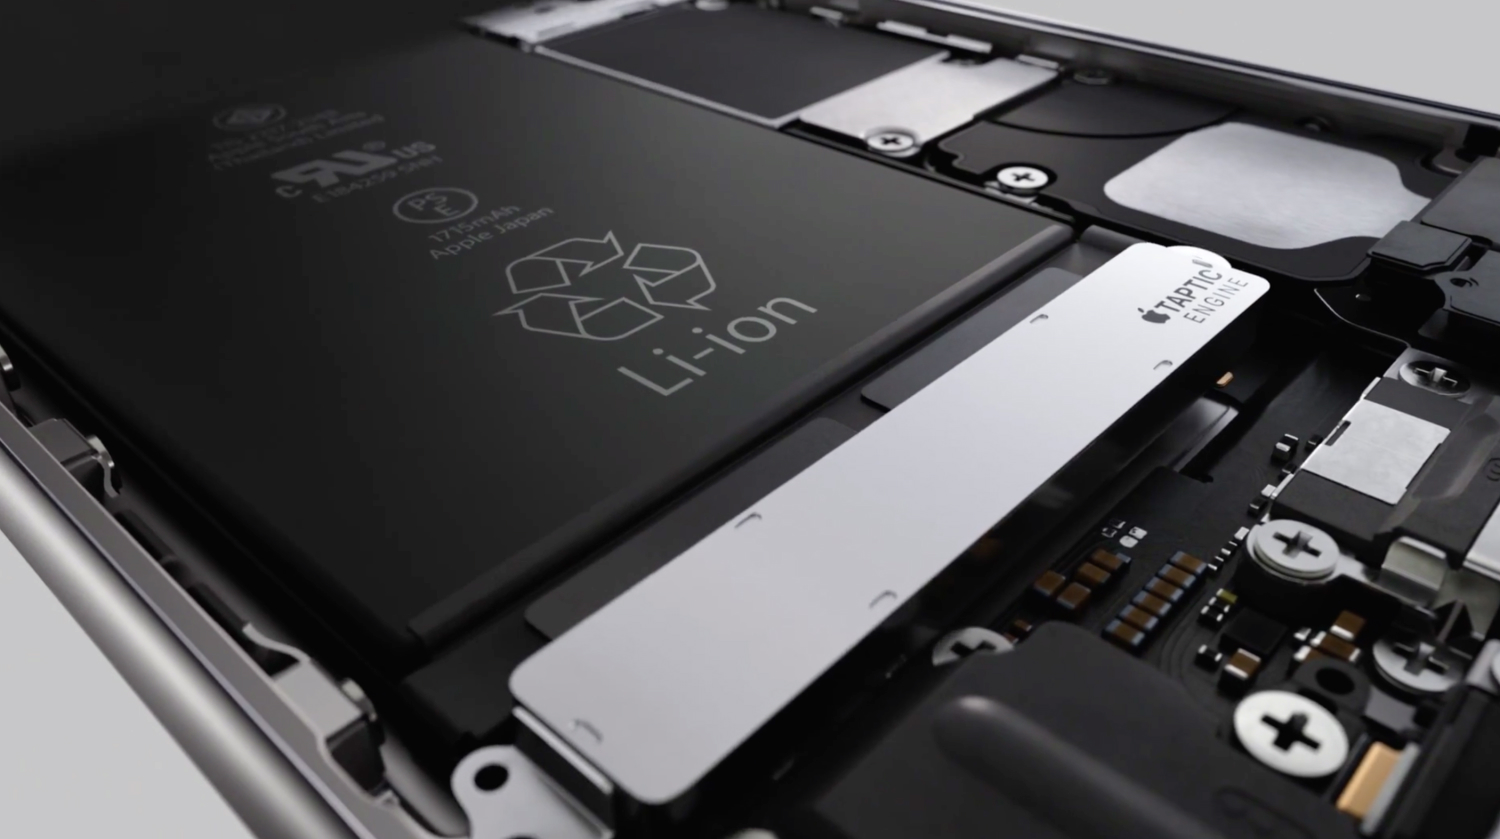 iphone 6 battery size iphone 6s vs iphone 6 plus battery tests bgr 14939